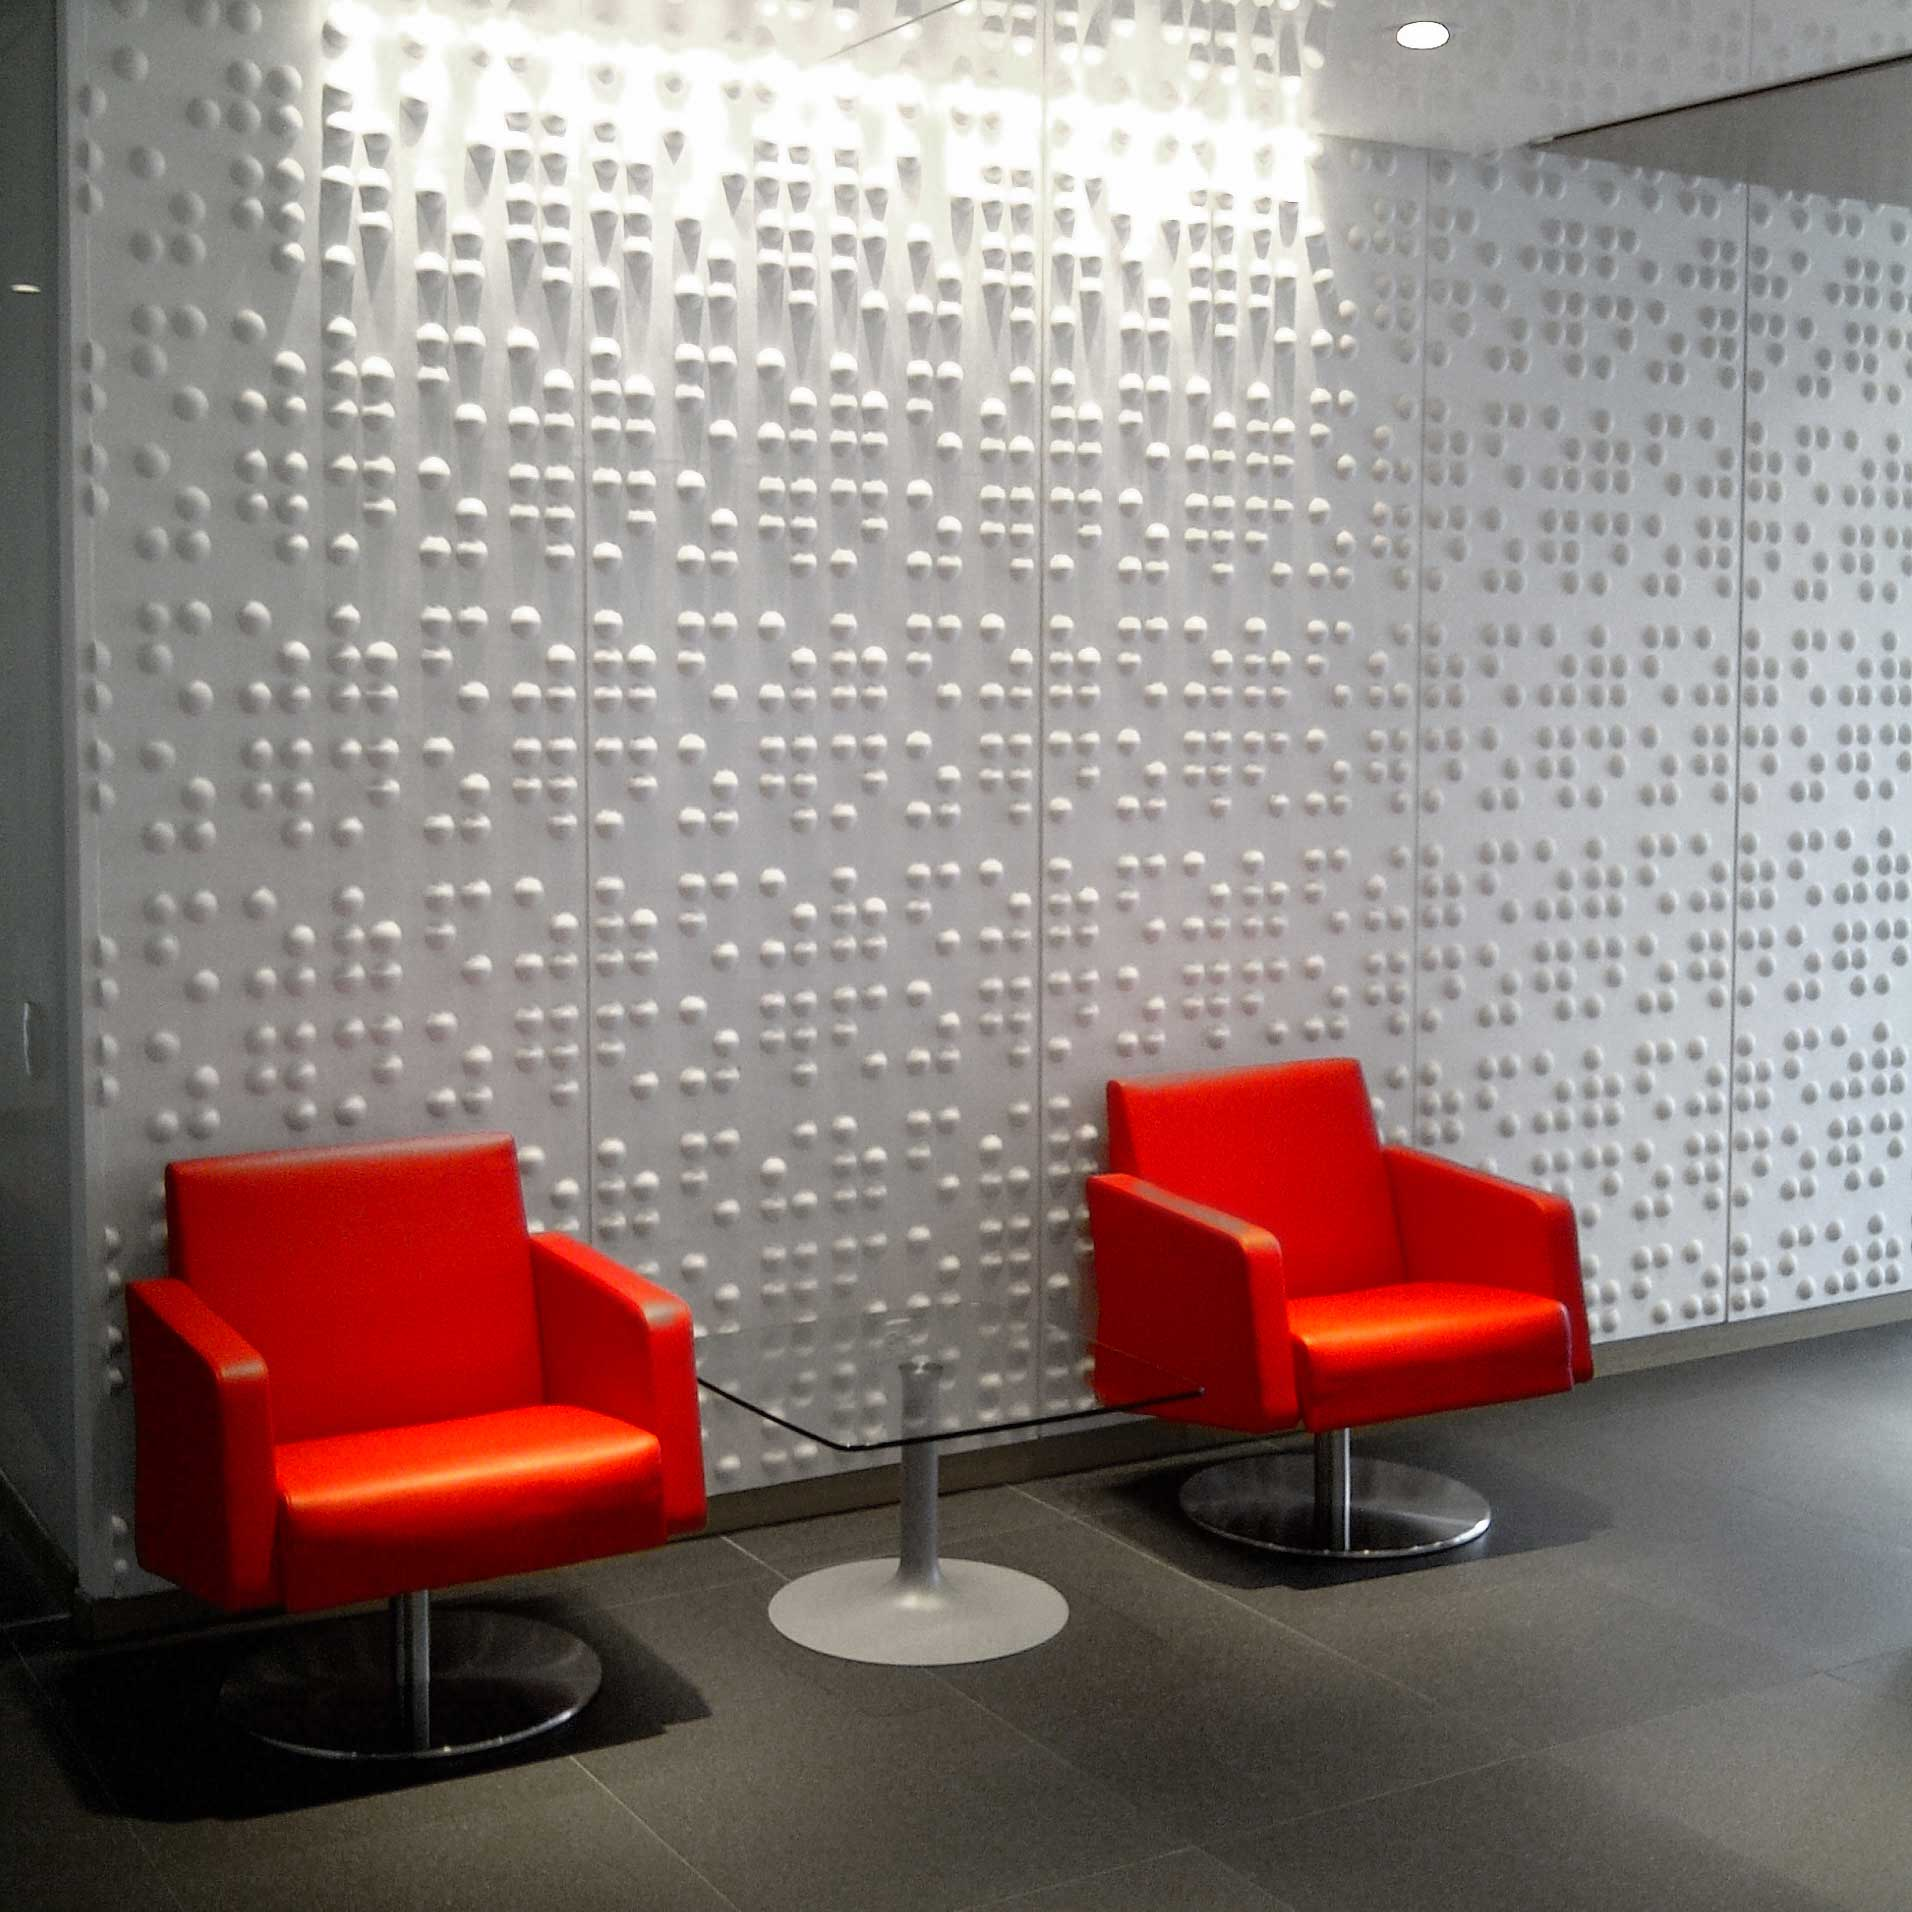 wall tiles for office. Braille Wall Flats \u2013 3D Panels Wall Tiles For Office